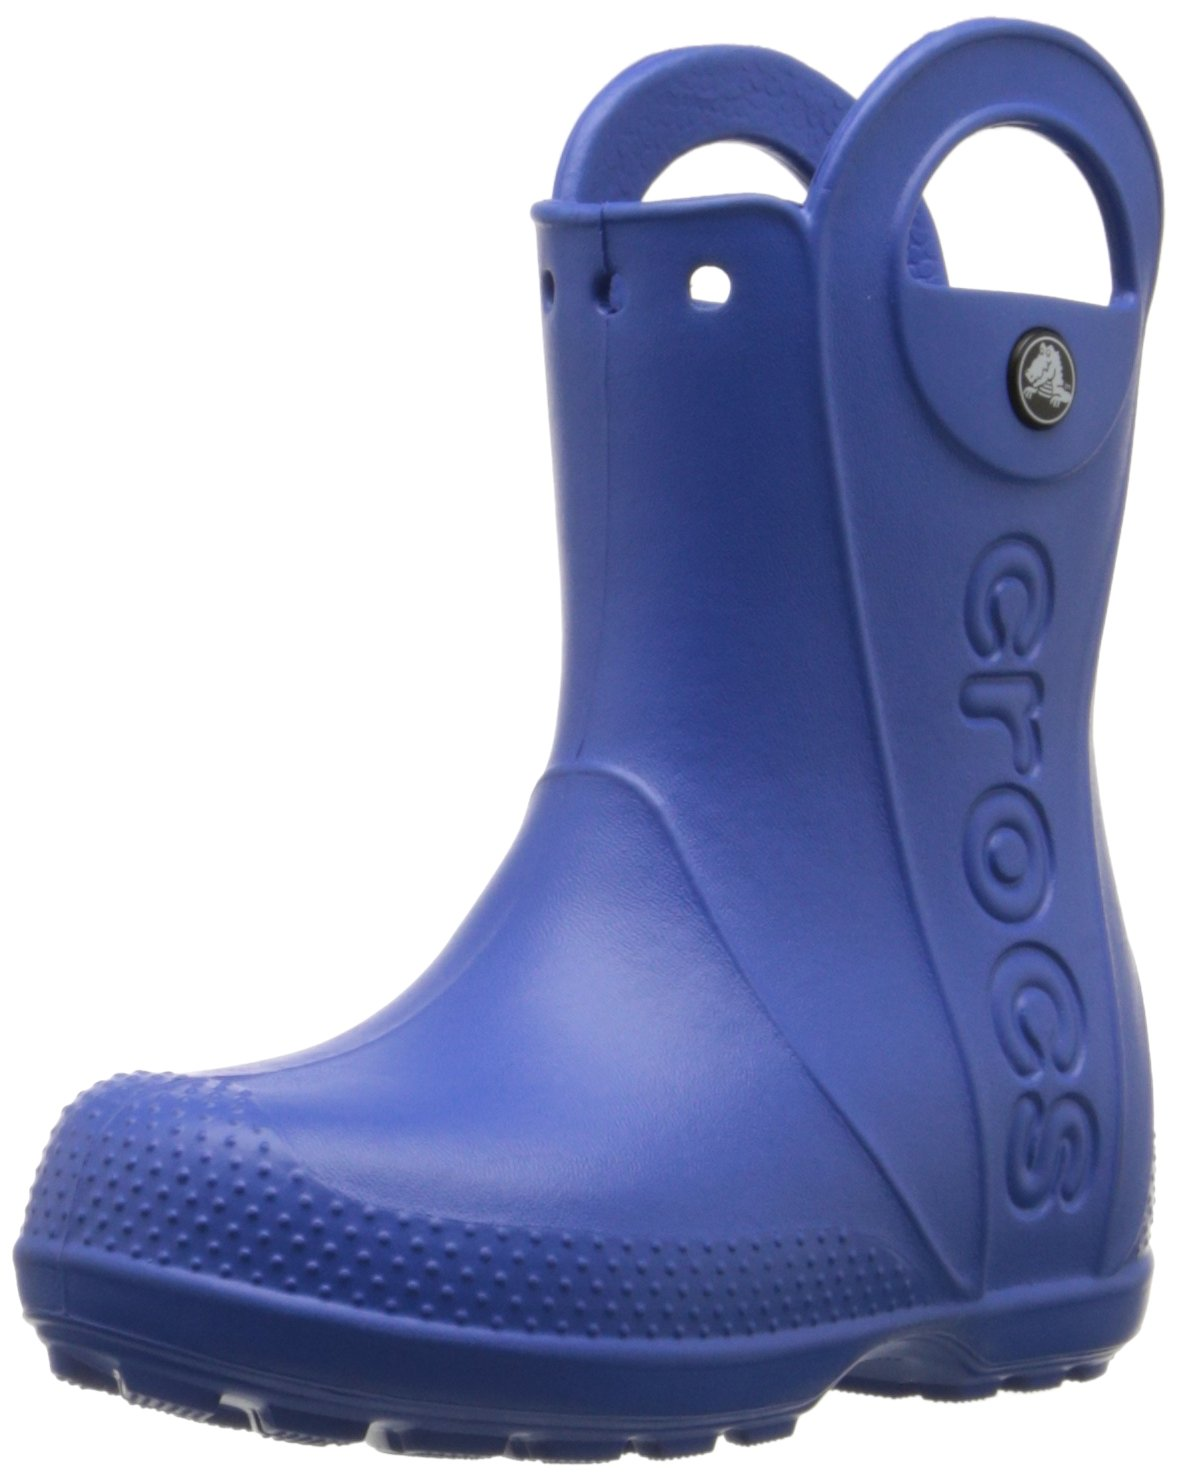 Crocs Kids' Handle It Boot,Sea Blue,10 M US Toddler